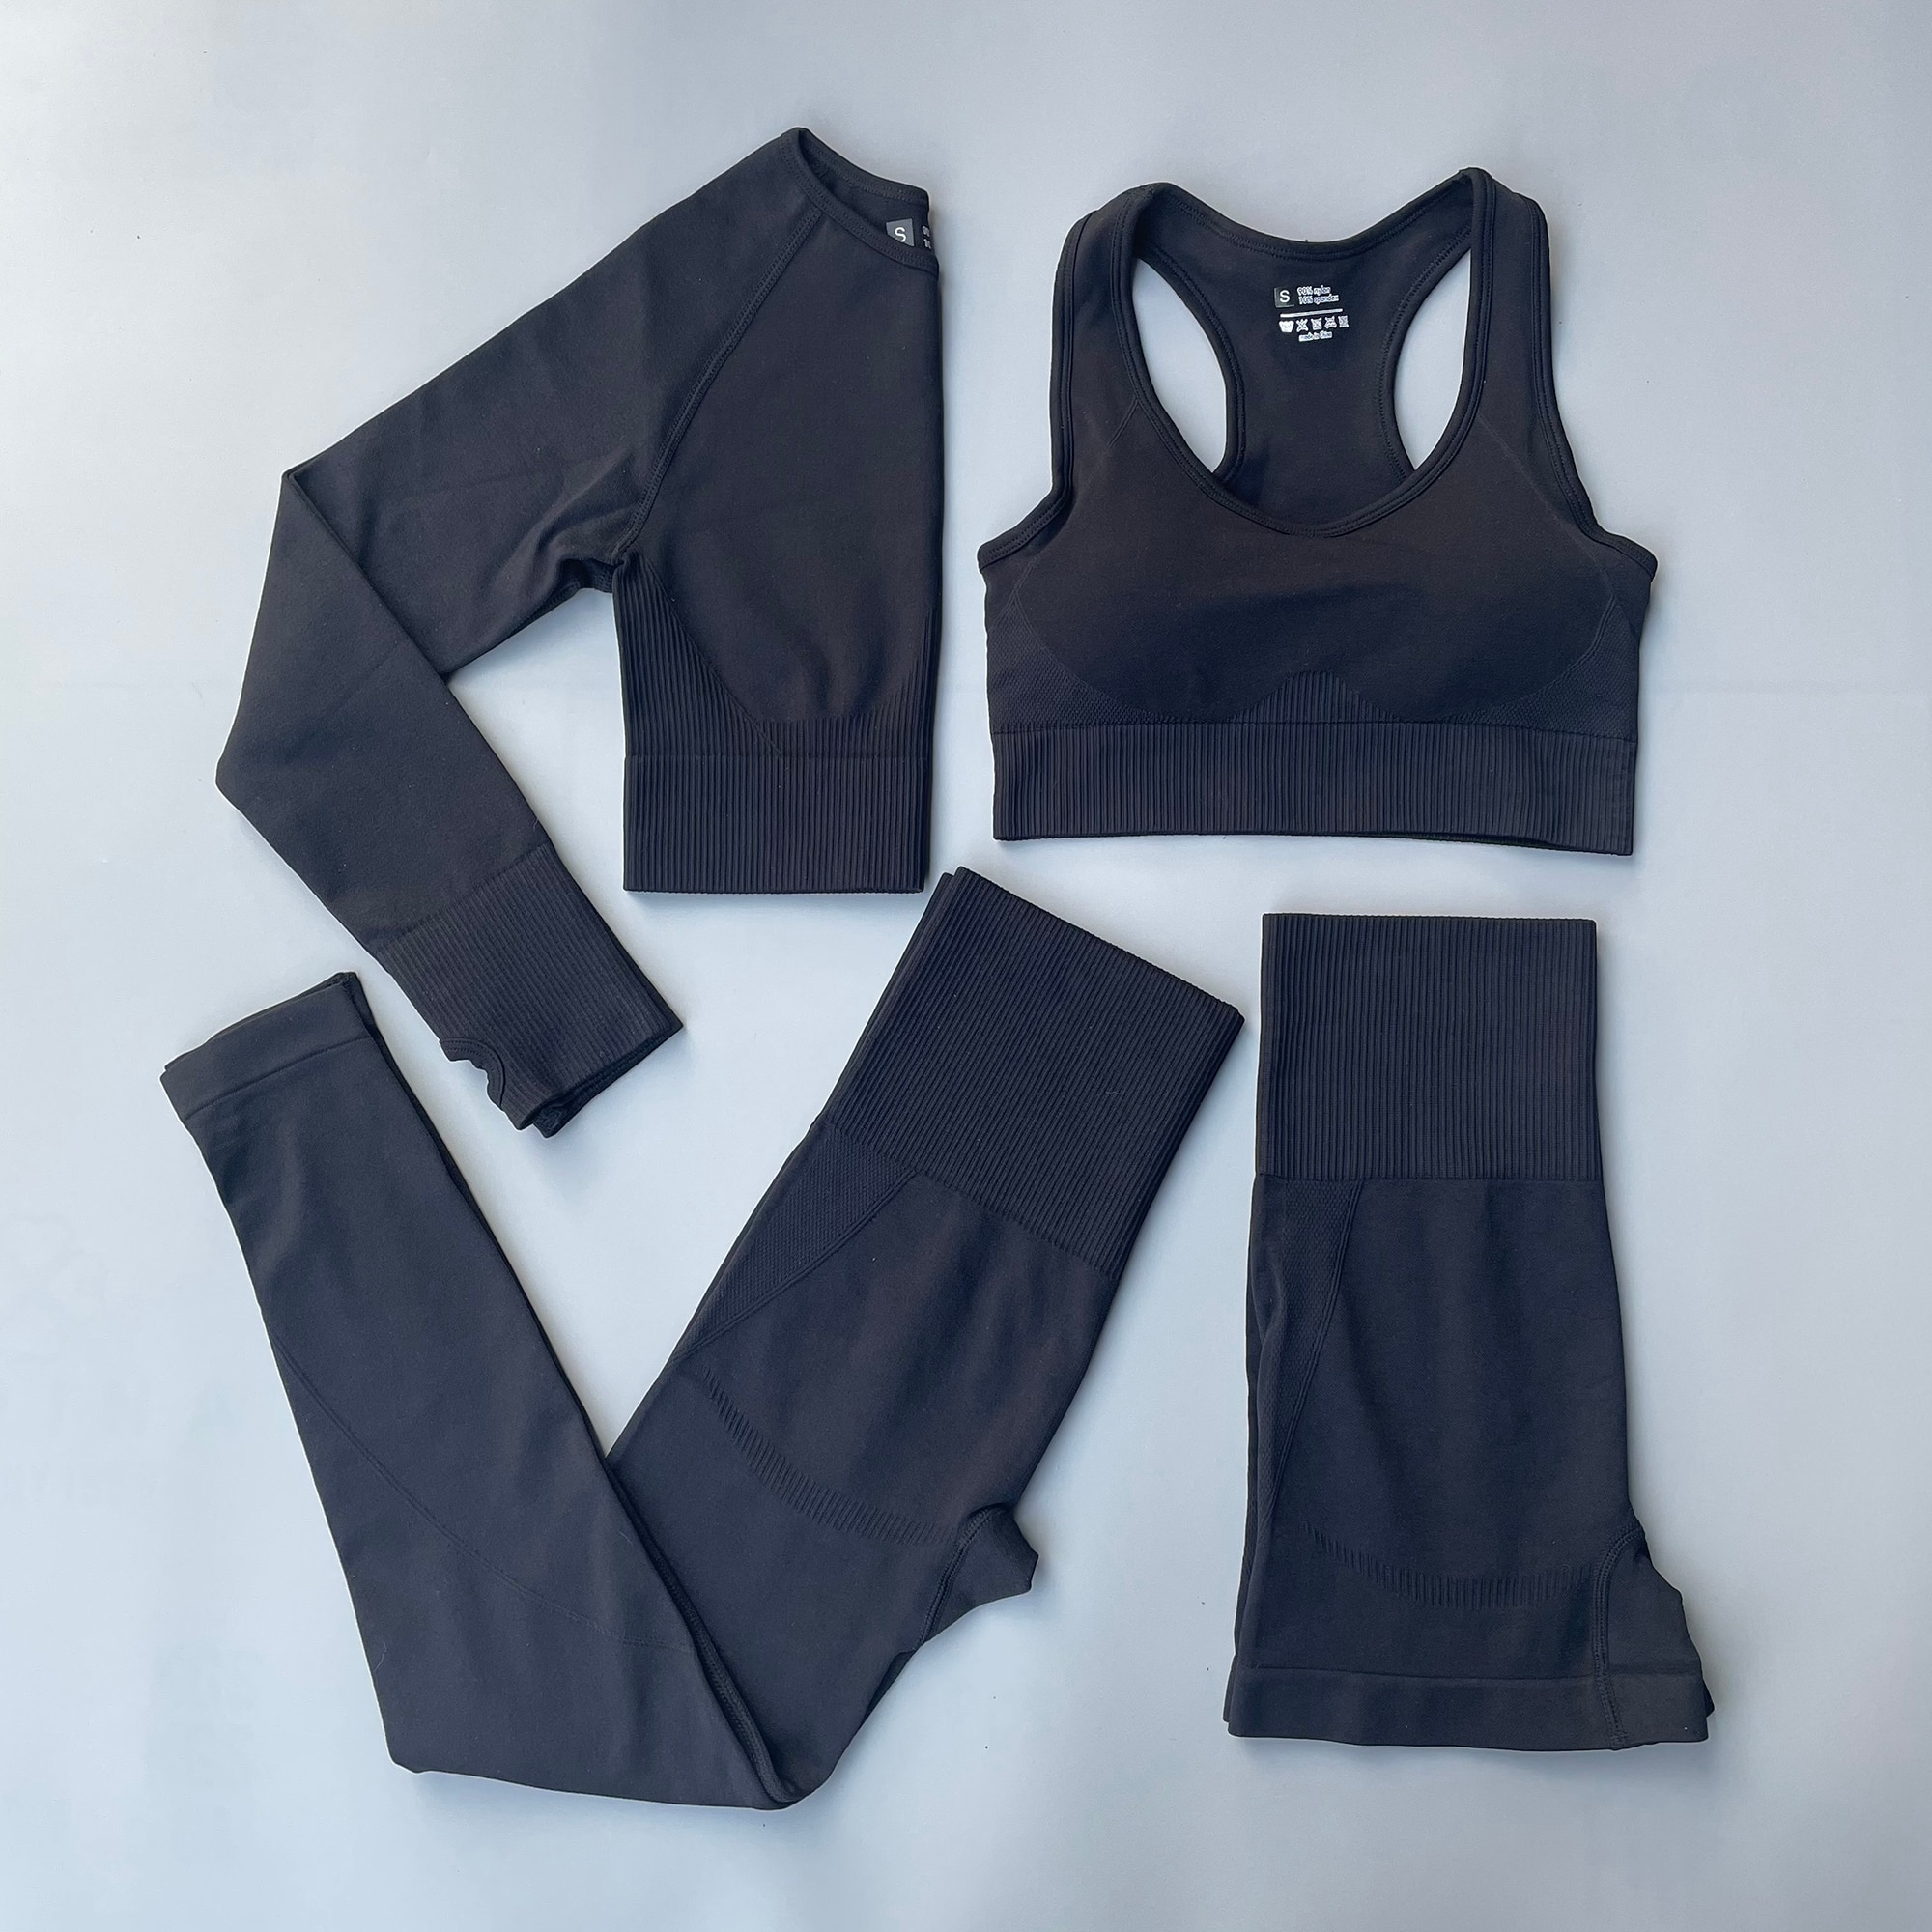 Women Seamless yoga set Workout Sportswear Quick-drying fitness suit Skinny Gym Clothing CropTop Hig